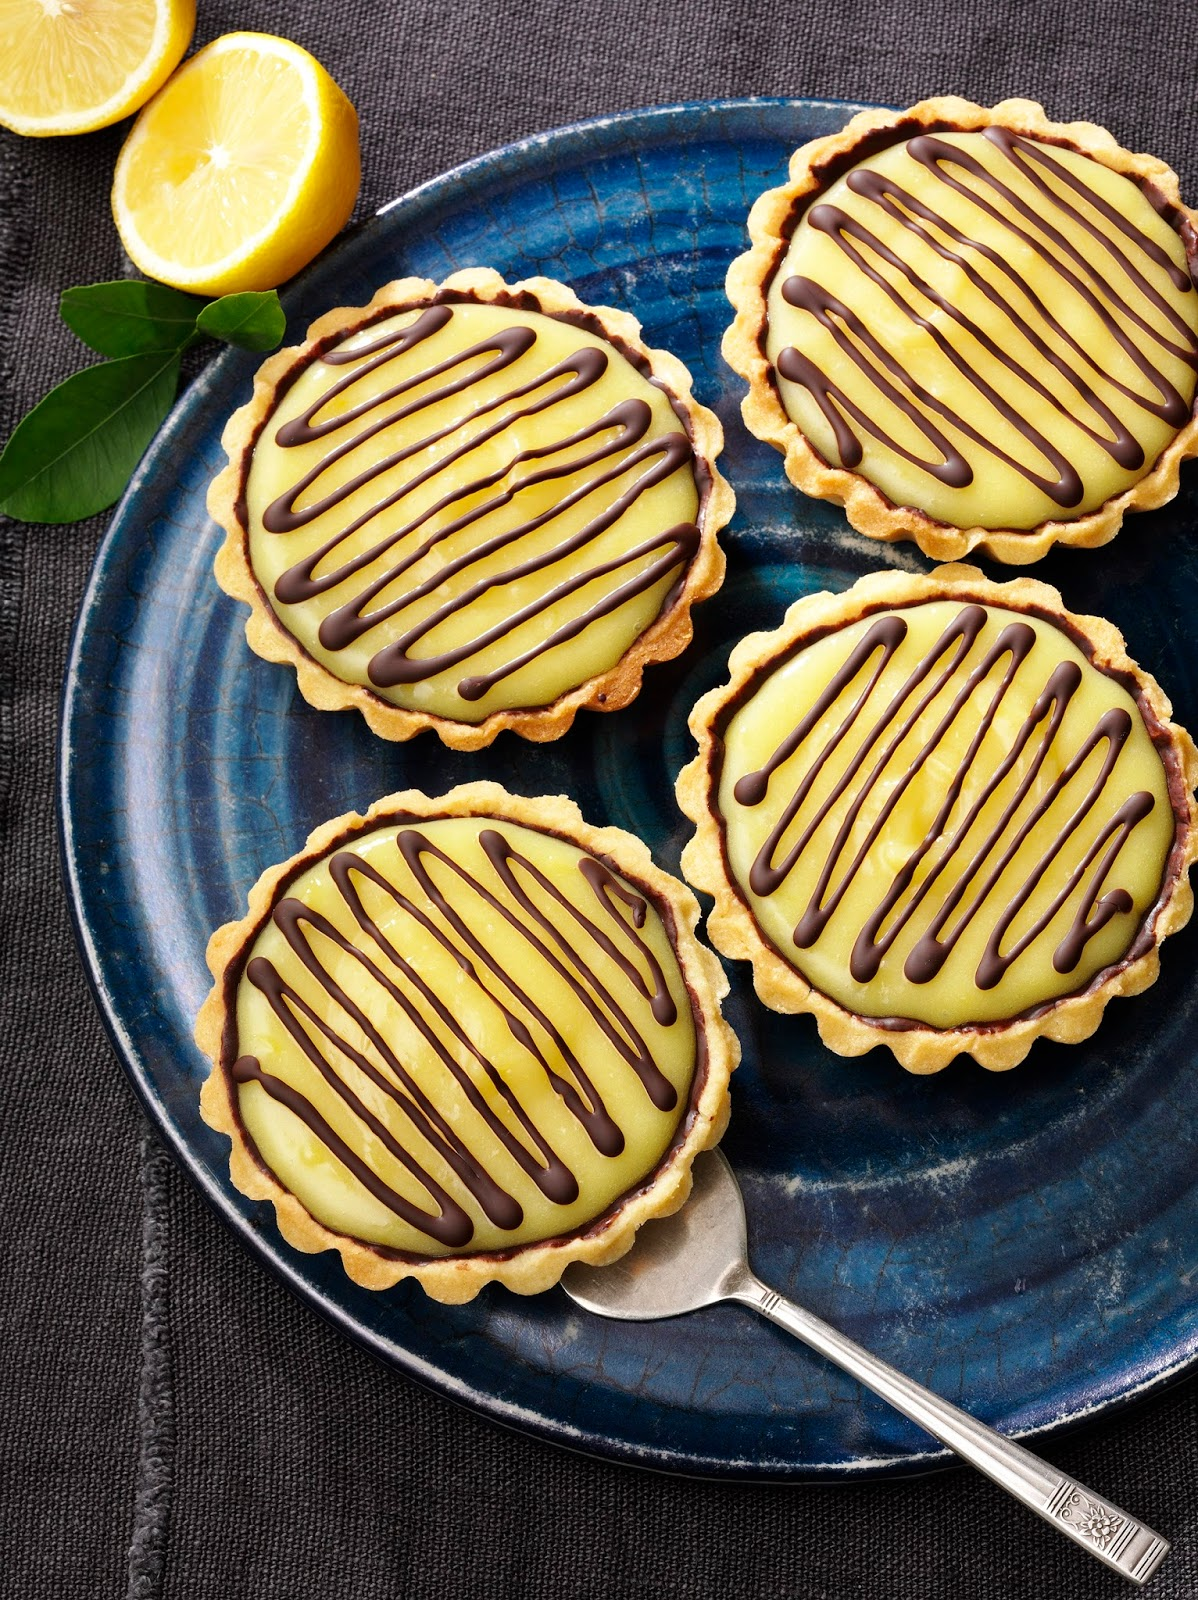 Lemon and Chocolate Tart: Afternoon Tea Recipe